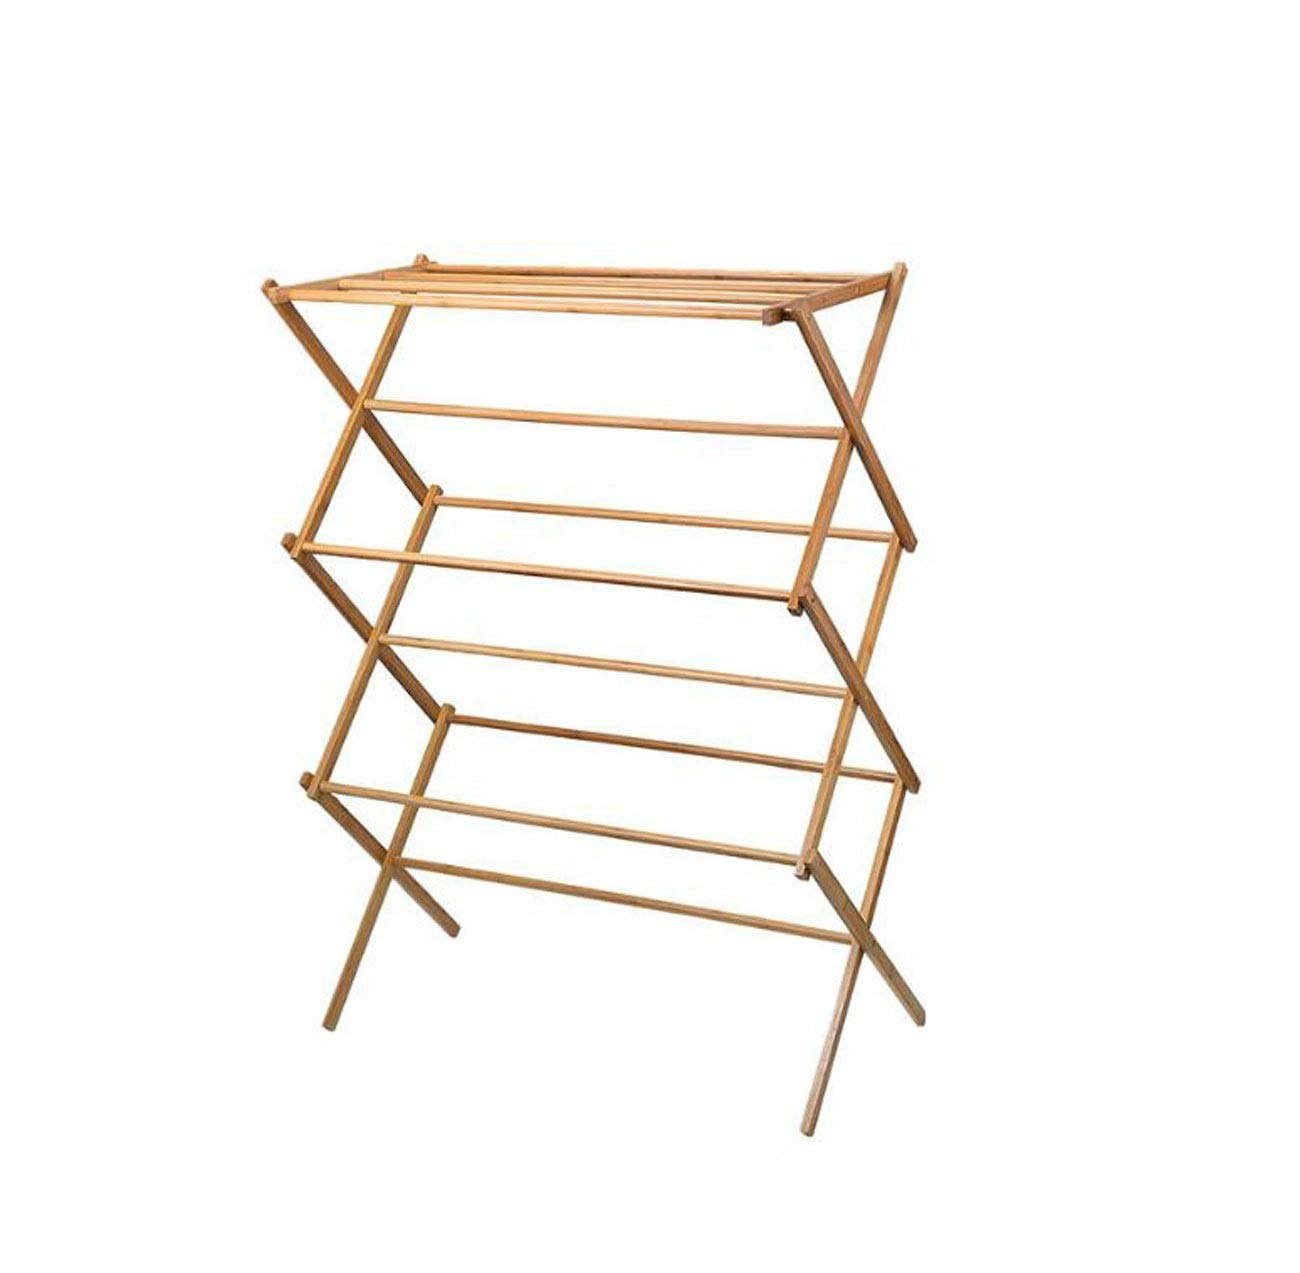 HYZLYJ Clothes Drying Rack, Floor Folding Bamboo Solid Wood Balcony Indoor X-Type Telescopic Household Towel Rack Drying Rack Trumpet